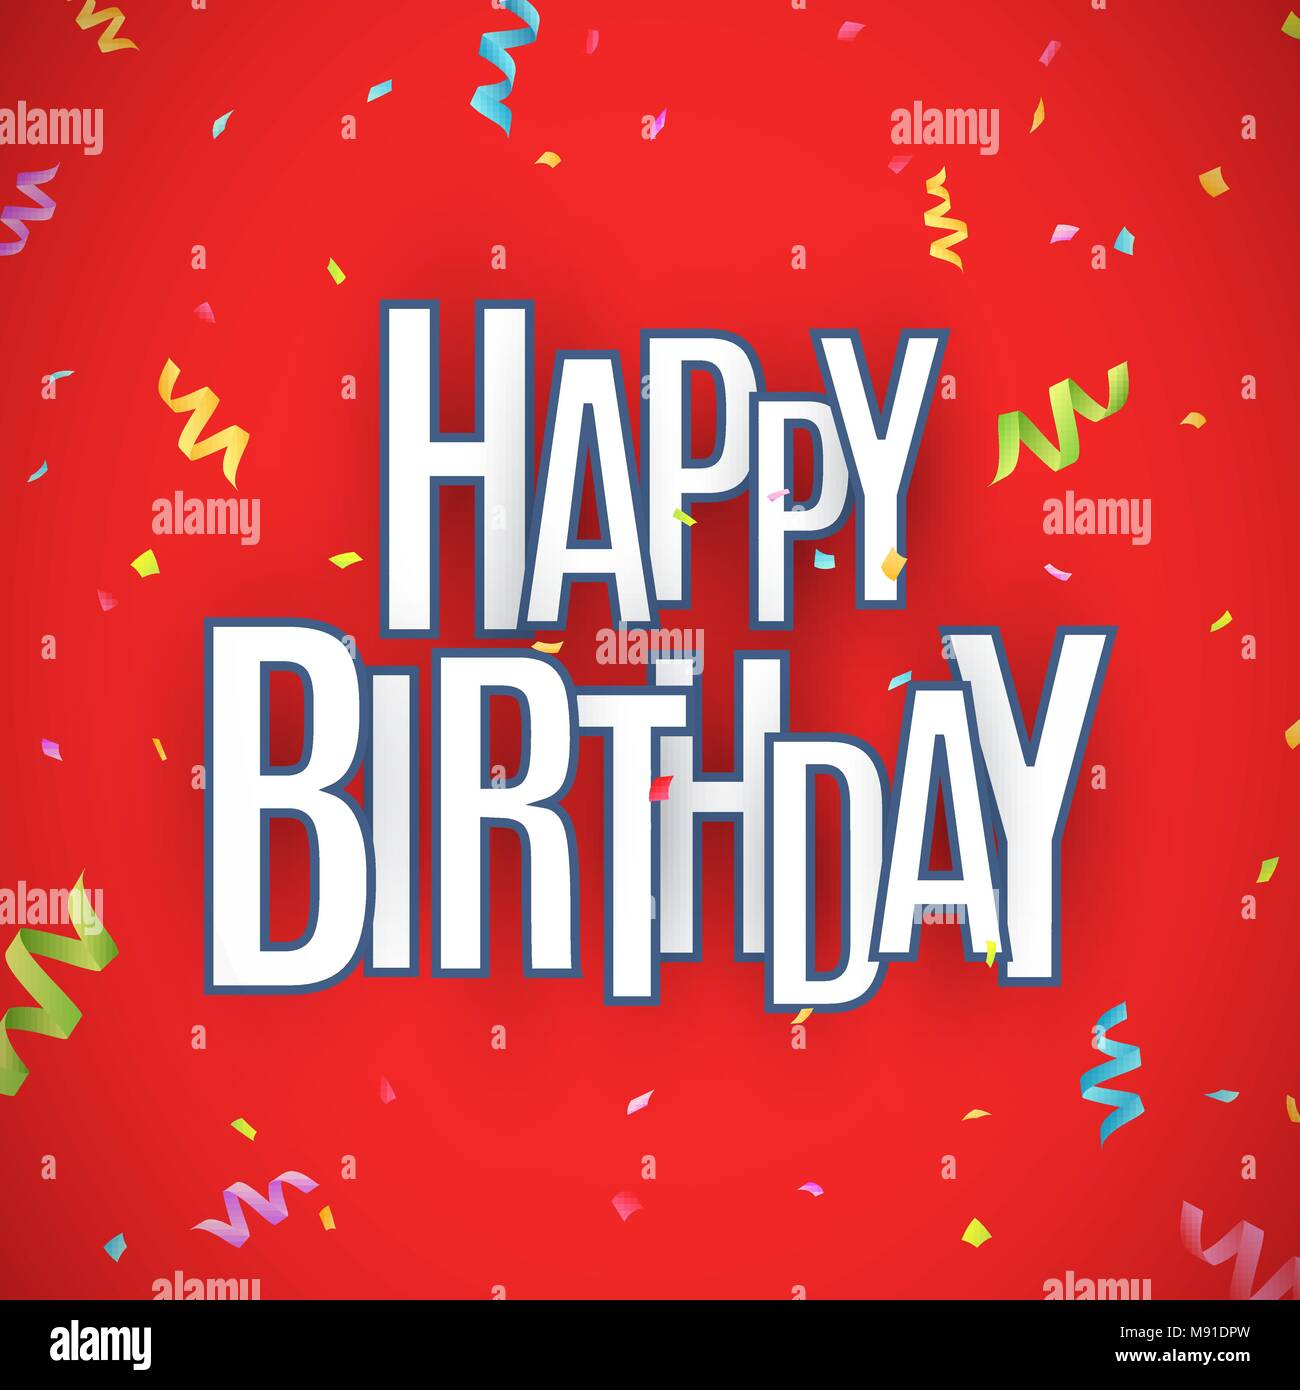 happy birthday inscription white paper chaotic letters with dark stroke on a red background explosion of multicolored confetti festive graphic elem